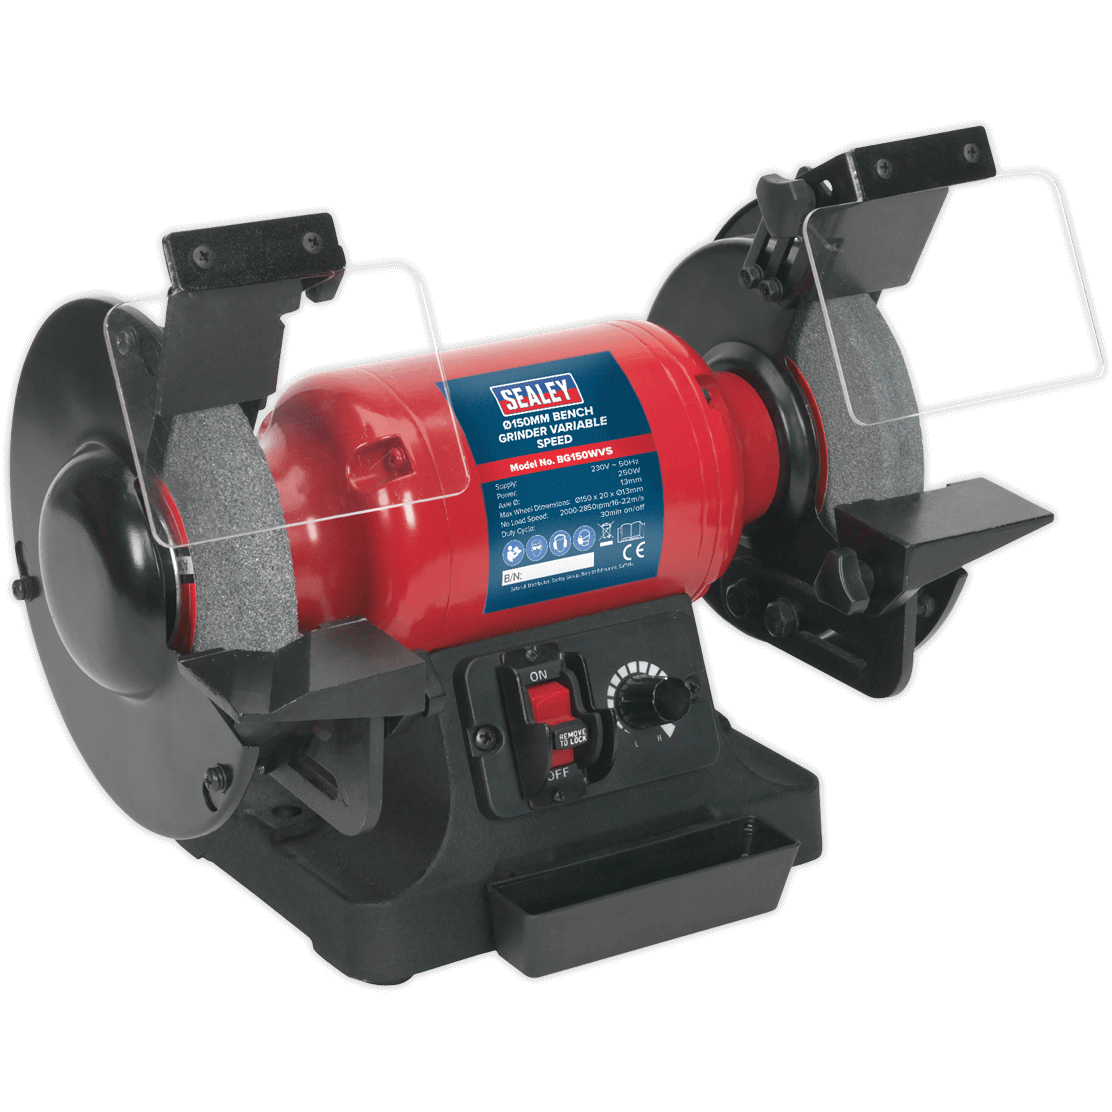 Sealey Bg150wvs Bench Grinder 150mm Variable Speed Bench